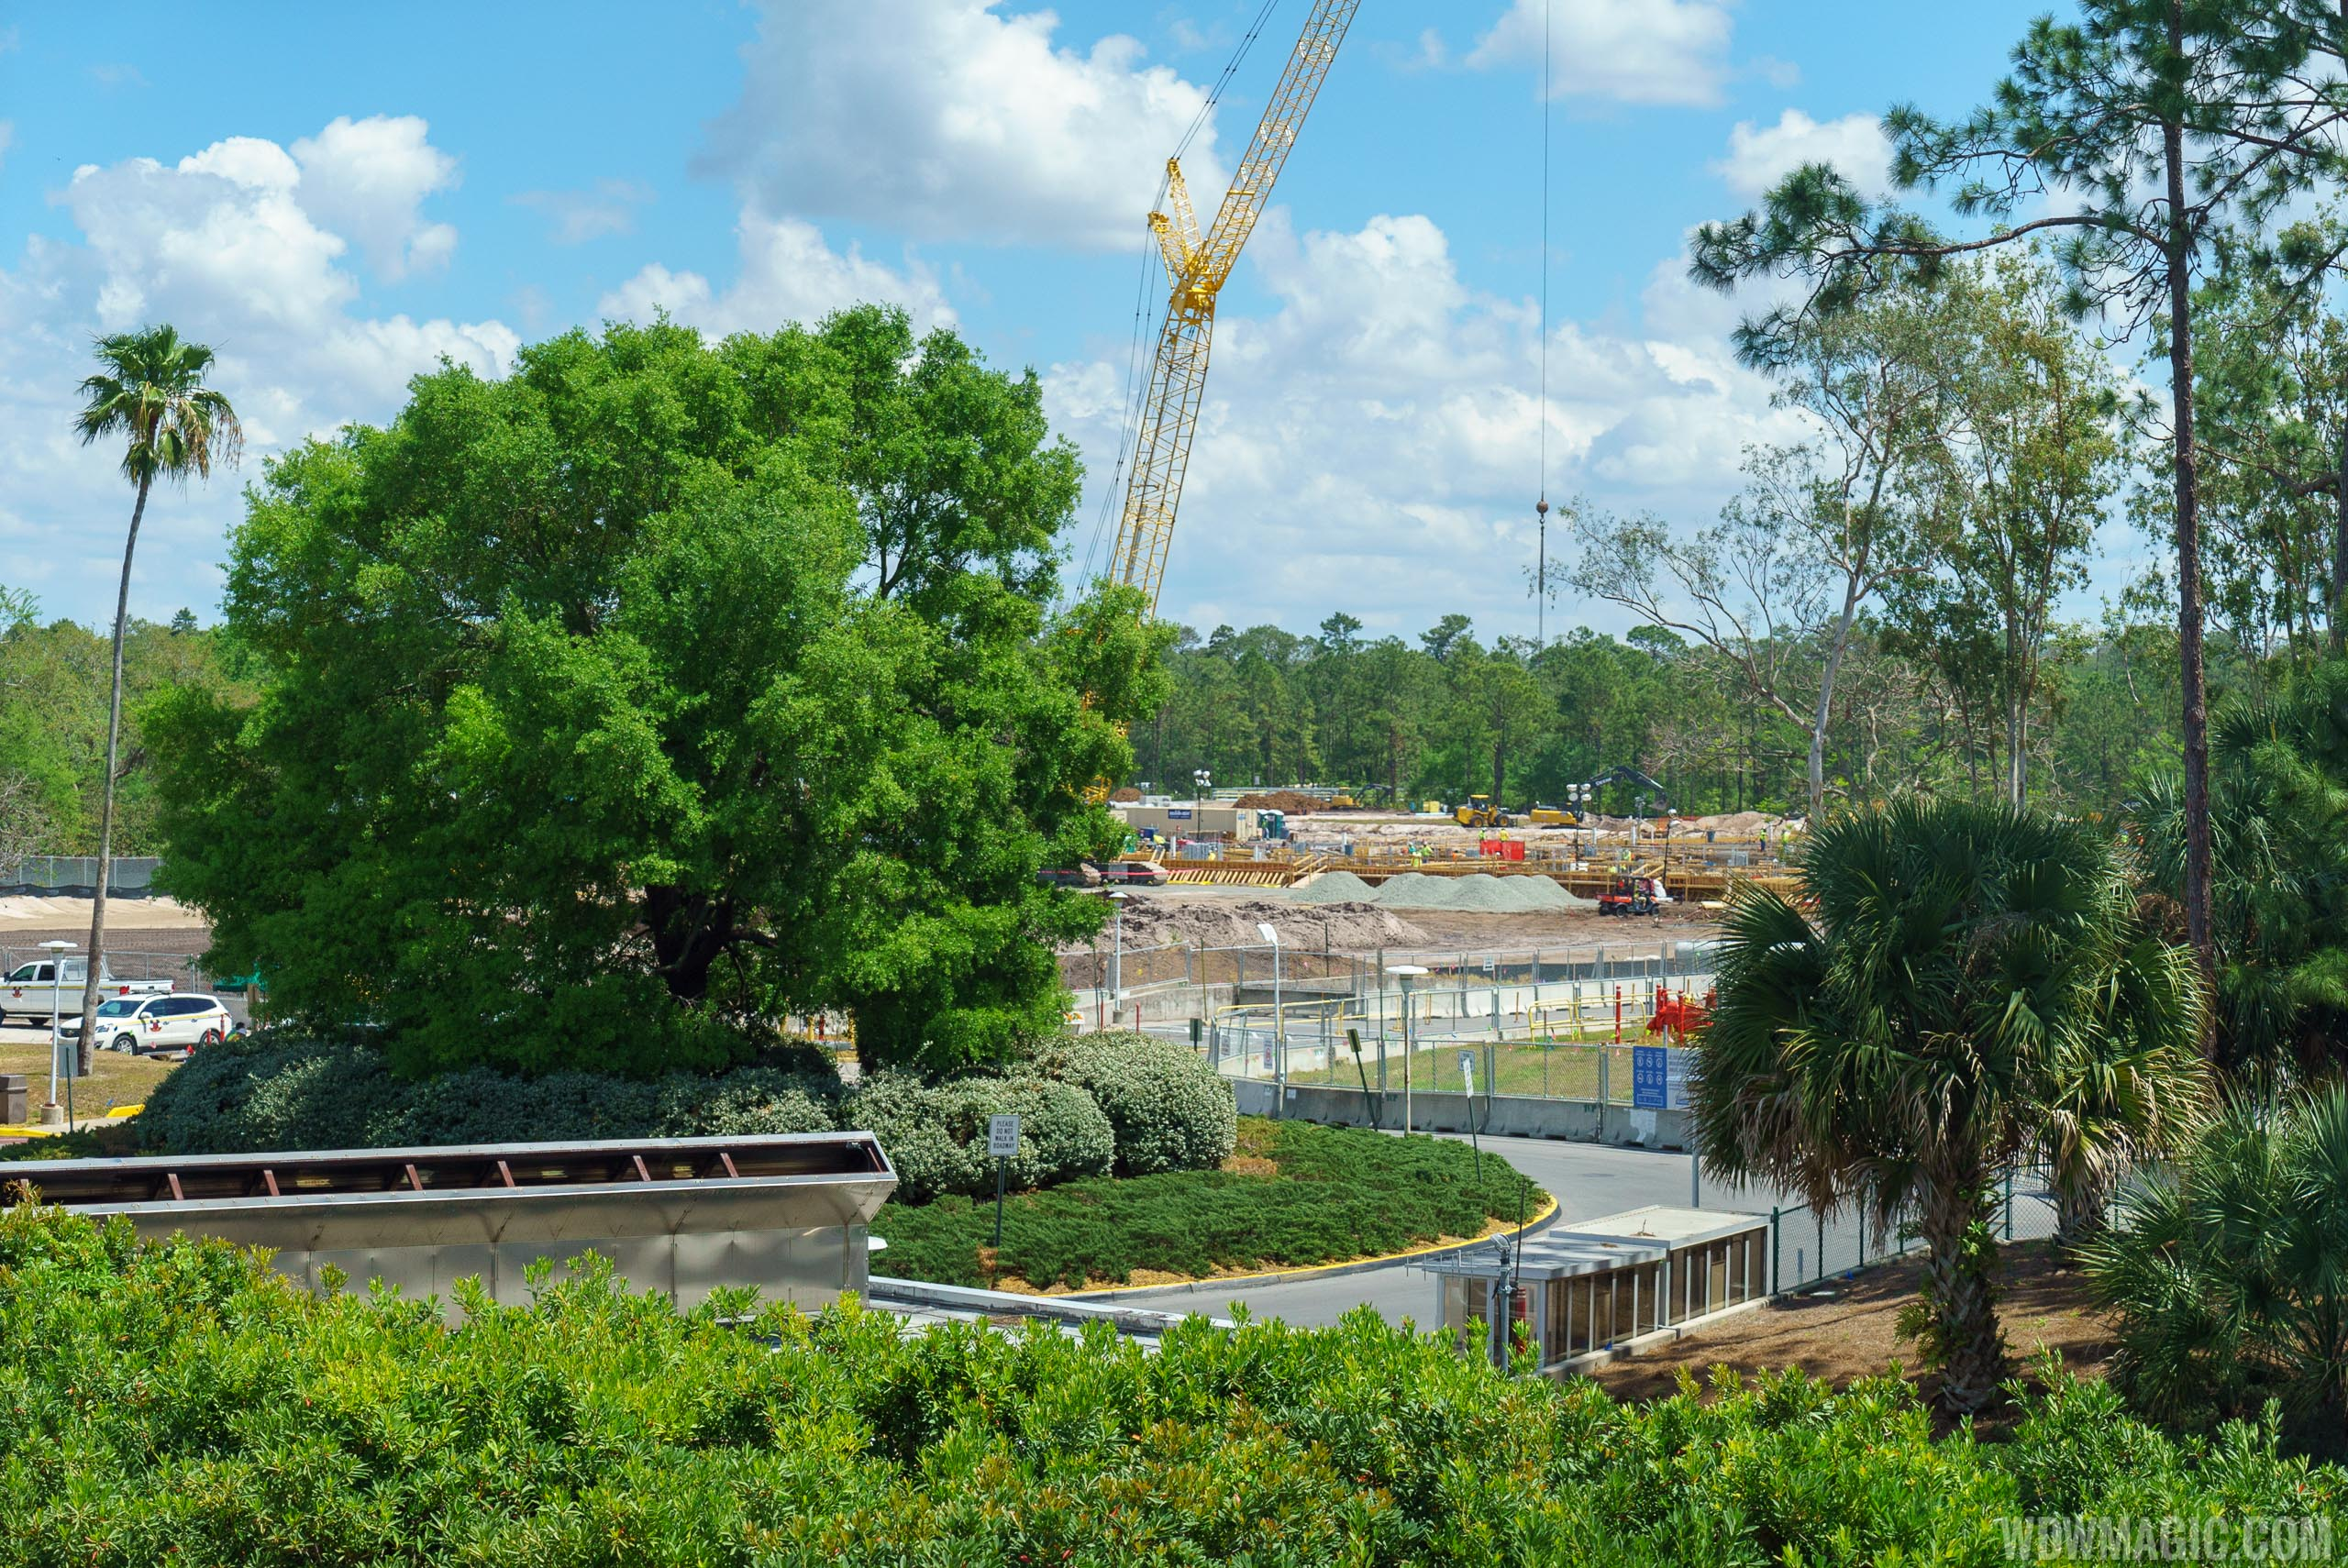 Guardians of the Galaxy construction - April 2018